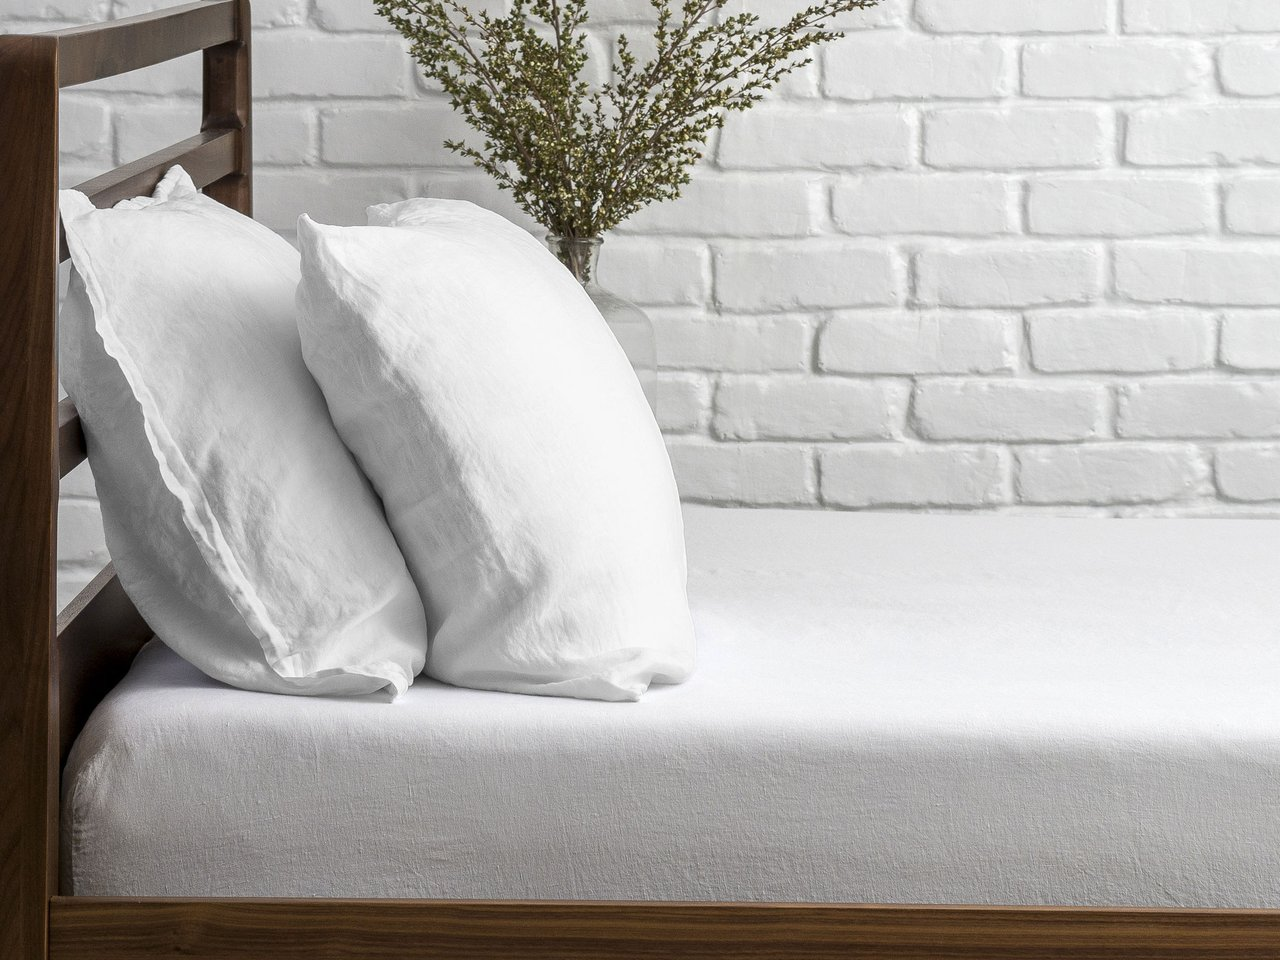 Parachute Cooling Linen Fitted Sheet on wooden bed